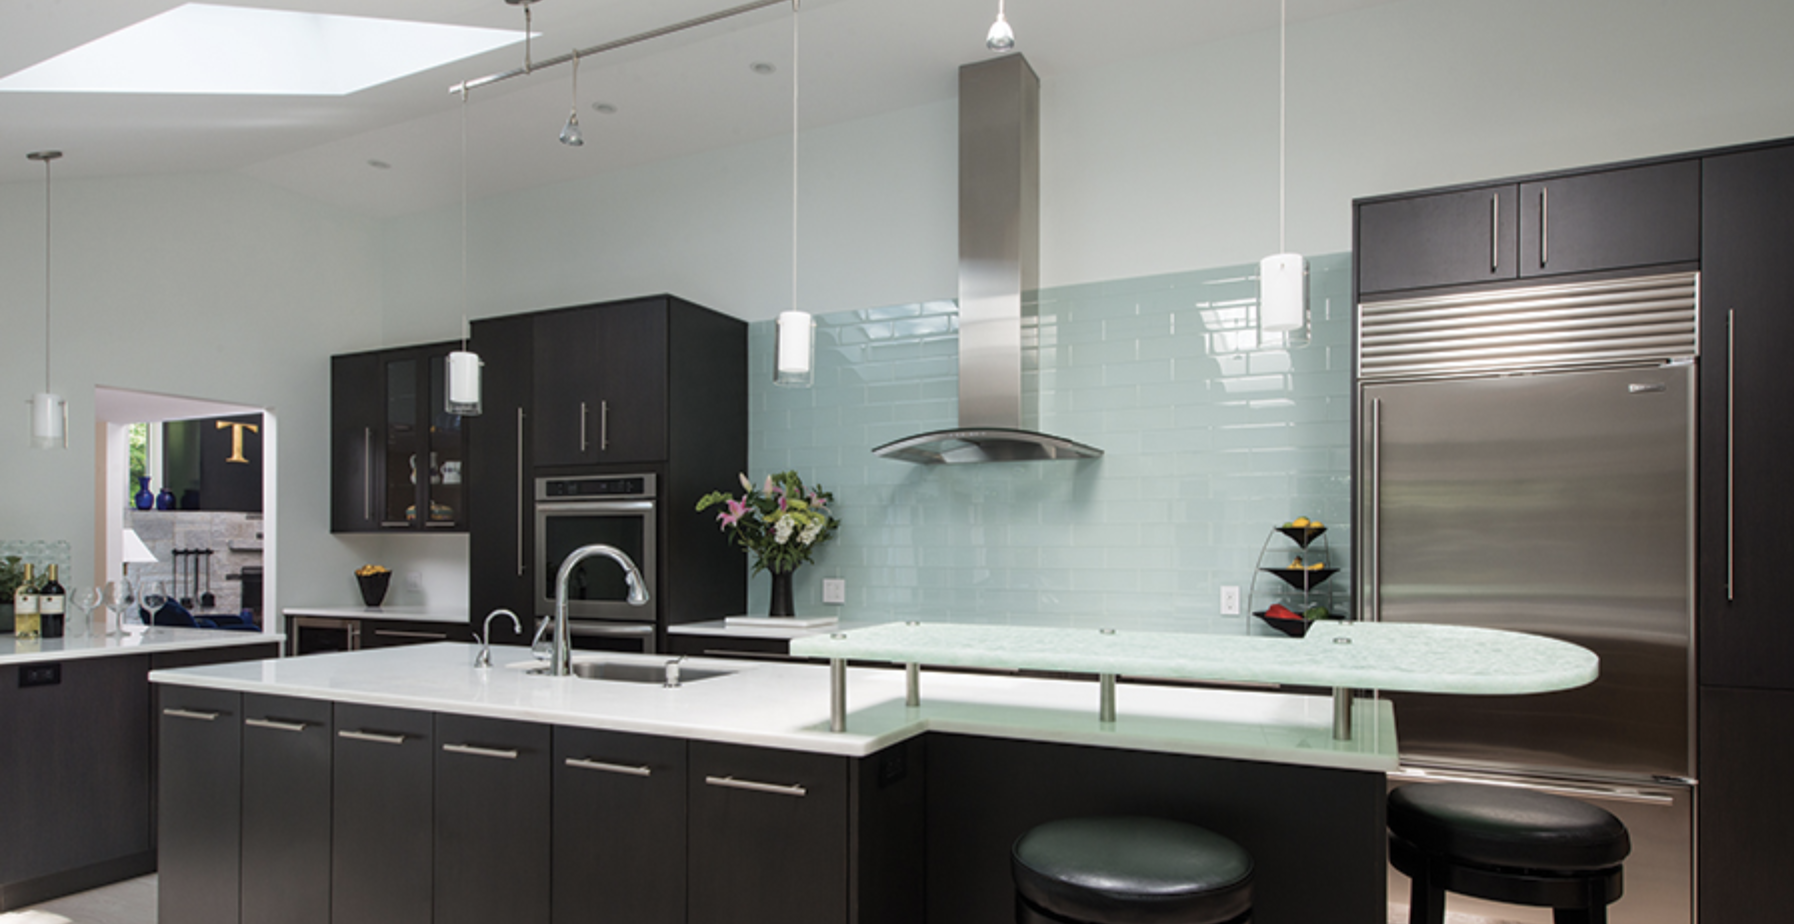 When Should You Remodel Your Kitchen?